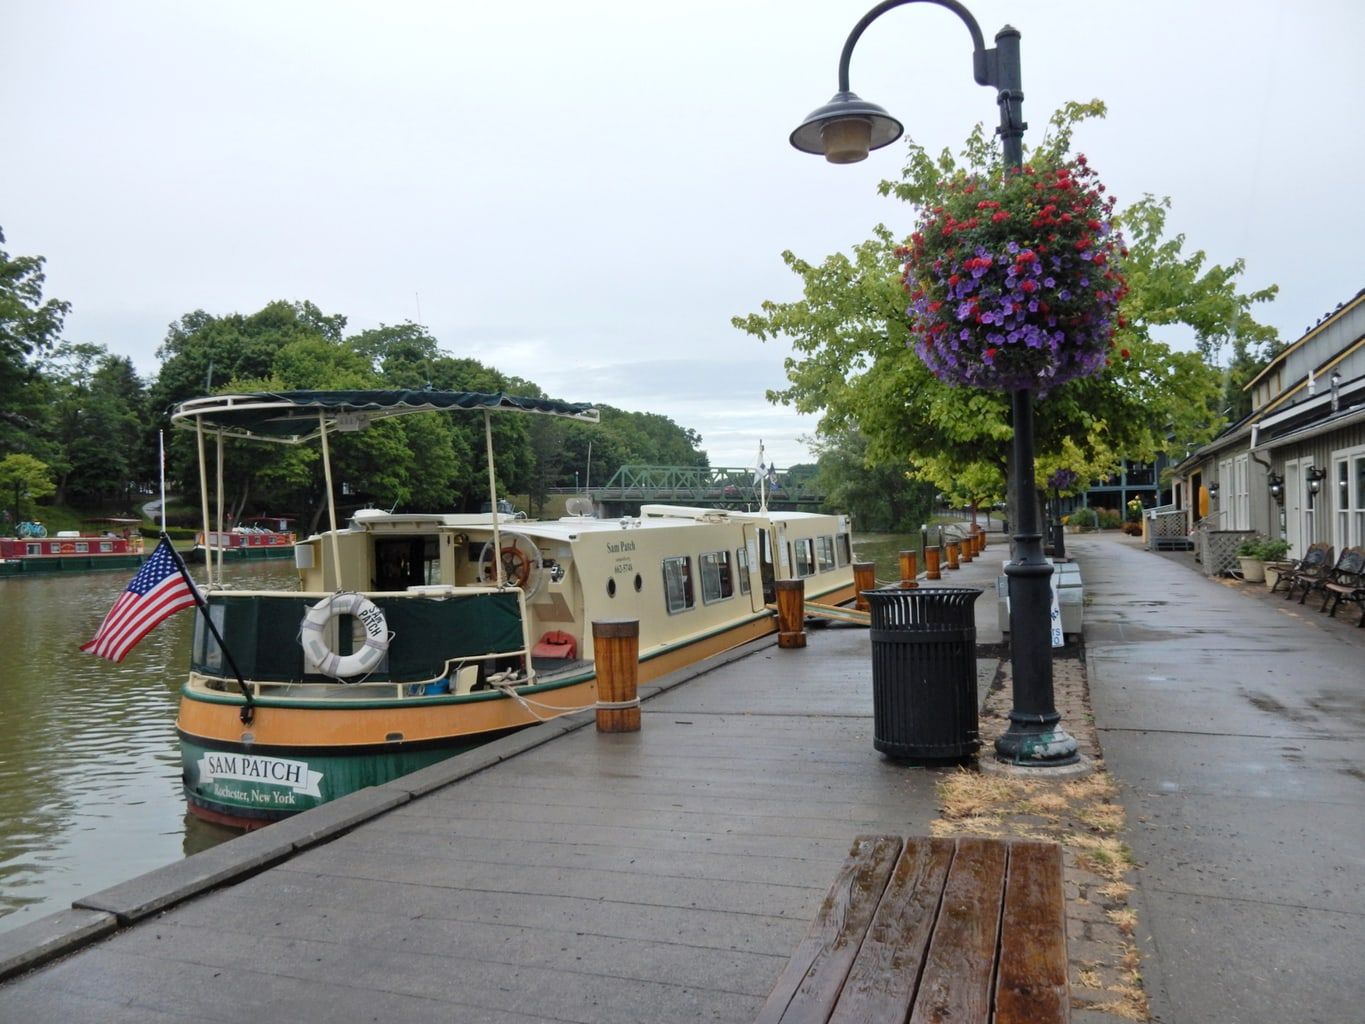 Sam Patch Canal Boat Pittsford NY